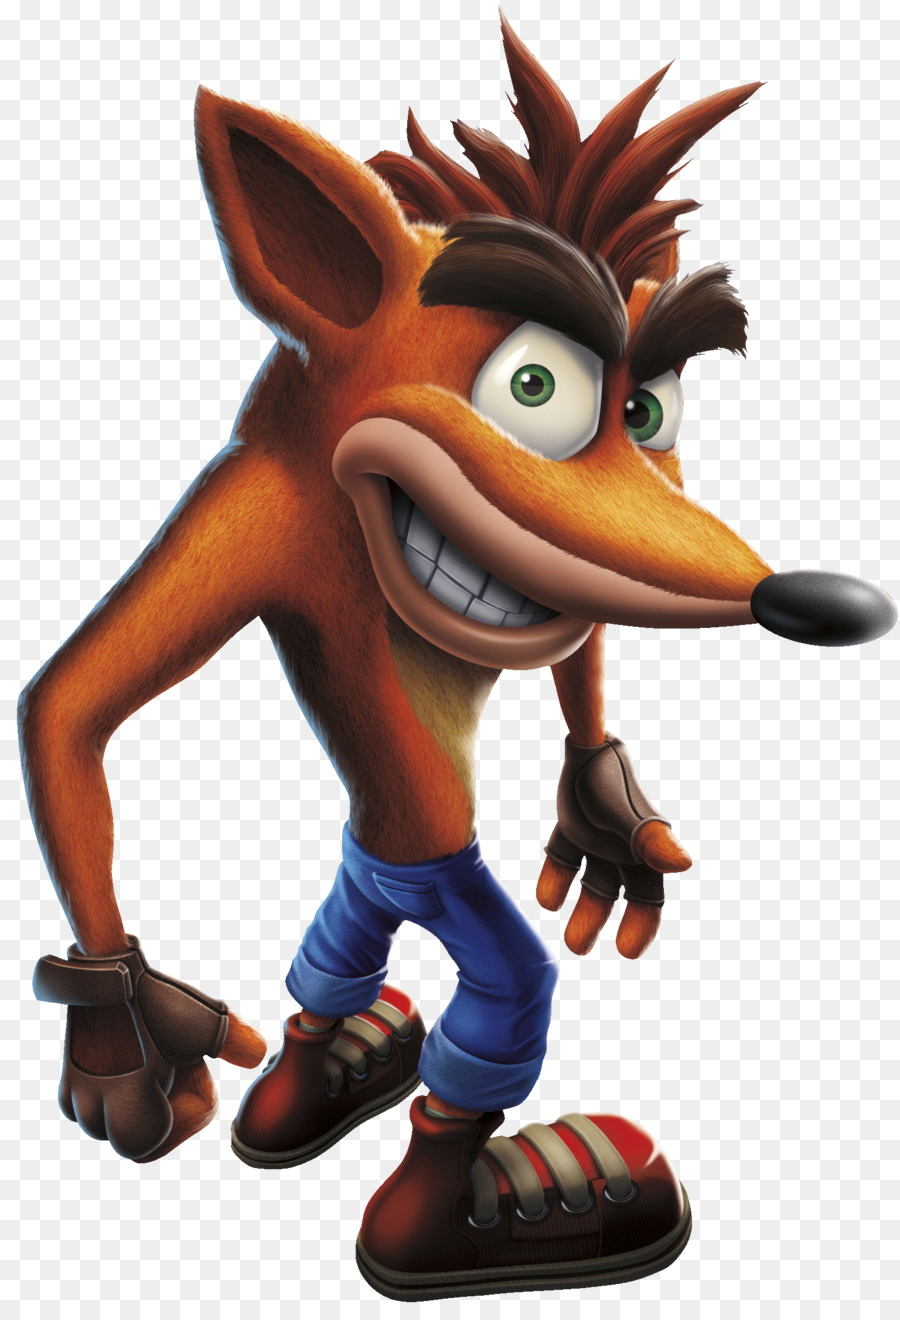 Crash Bandicoot N Sane Trilogy Figurine png download.